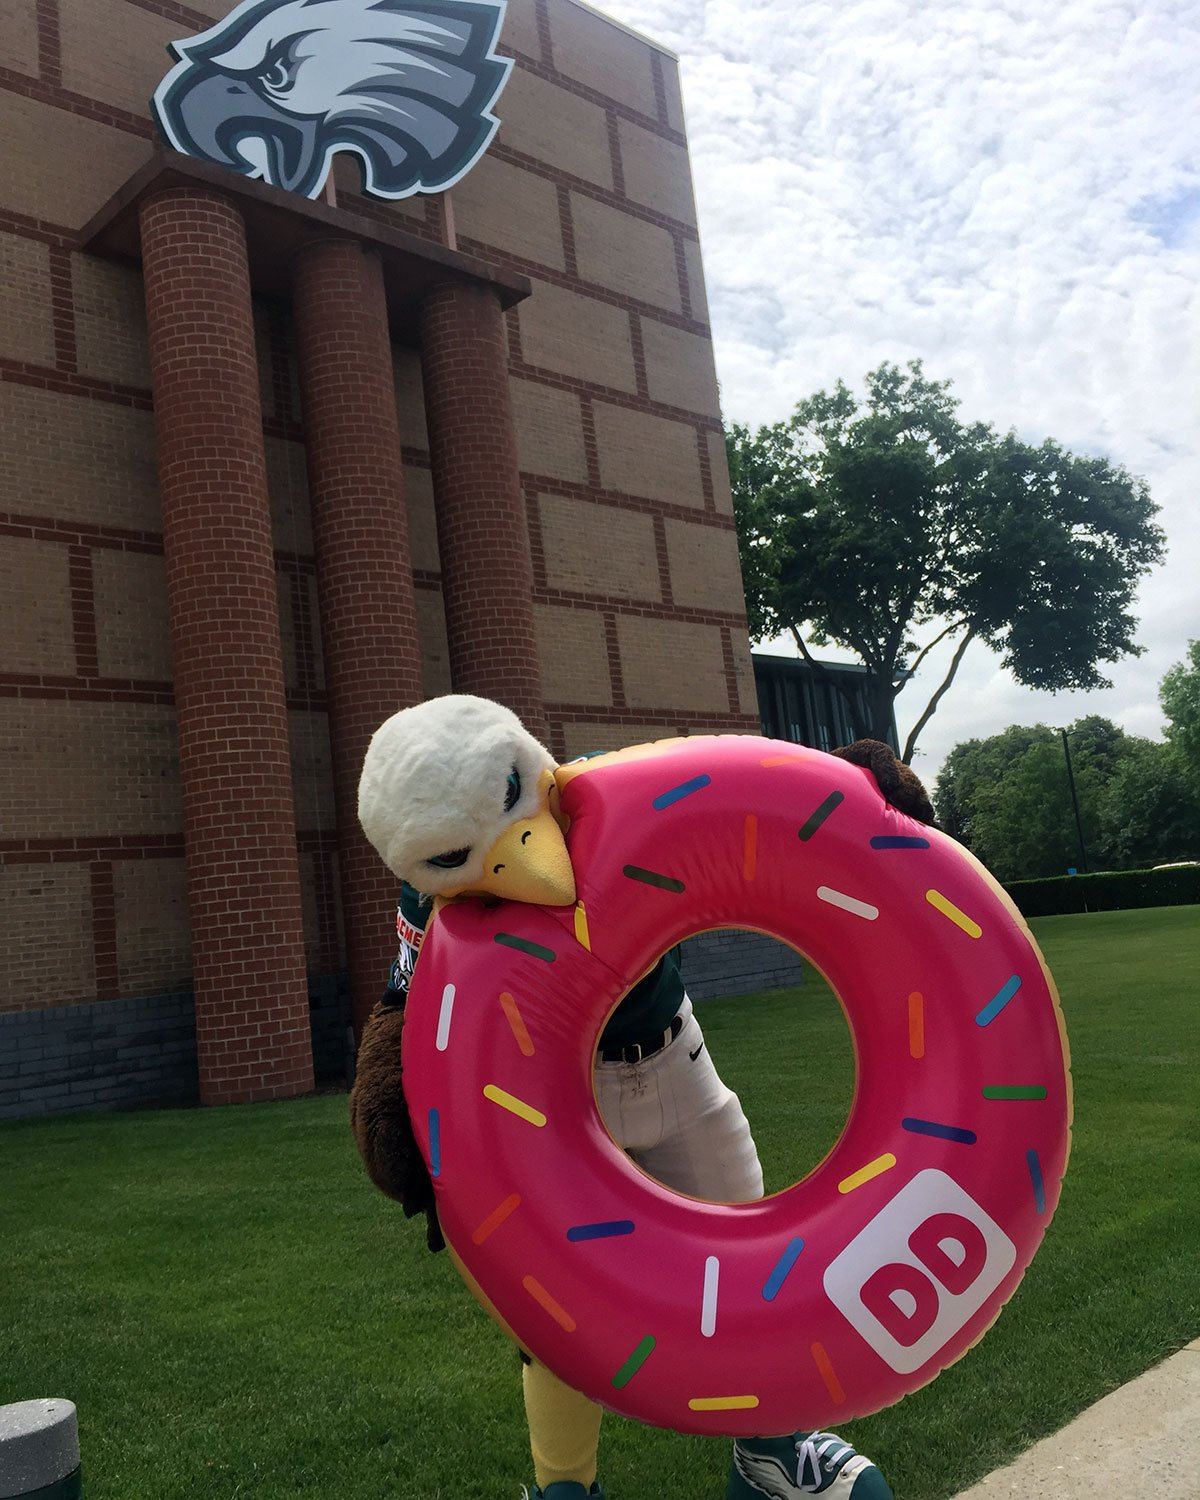 Celebrate #NationalDonutDay with SWOOP at the 1500 Spring Garden @DunkinPhilly from 11:30AM-1:30PM! https://t.co/SPmsEpMRD5